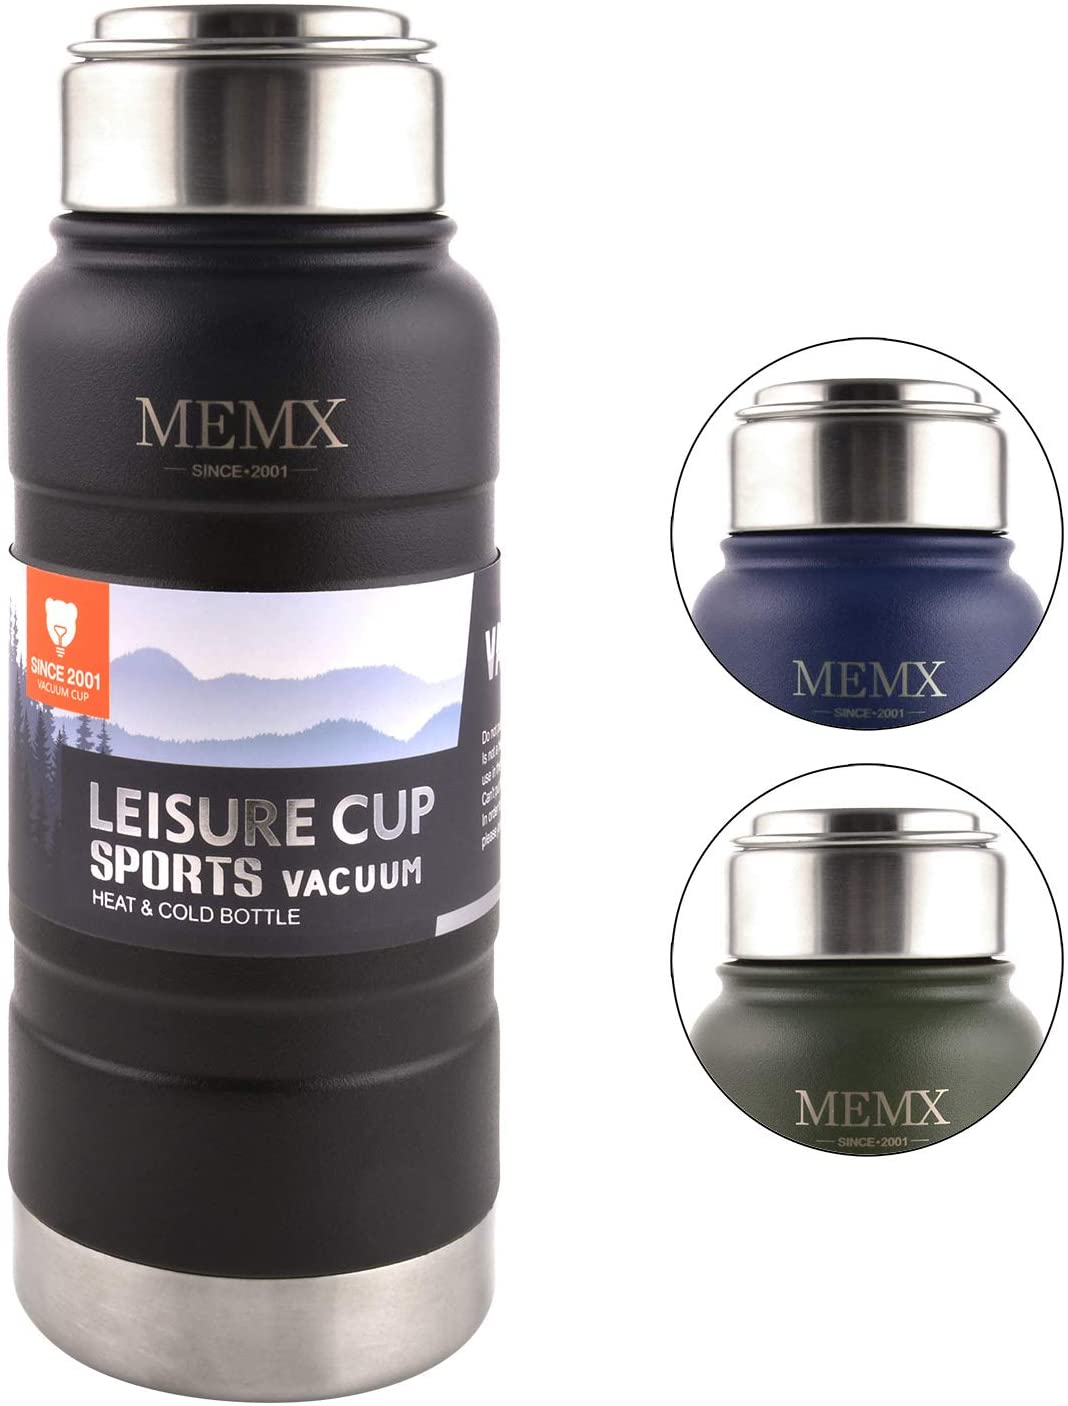 MEMX Stainless Steel Vacuum Insulated Water Bottle, 17 Ounce Sports Thermos Flask, Built-in Filter Thermo Mug, Keeps Hot or Cold with Double Wall Insulated Sweat Proof Design.